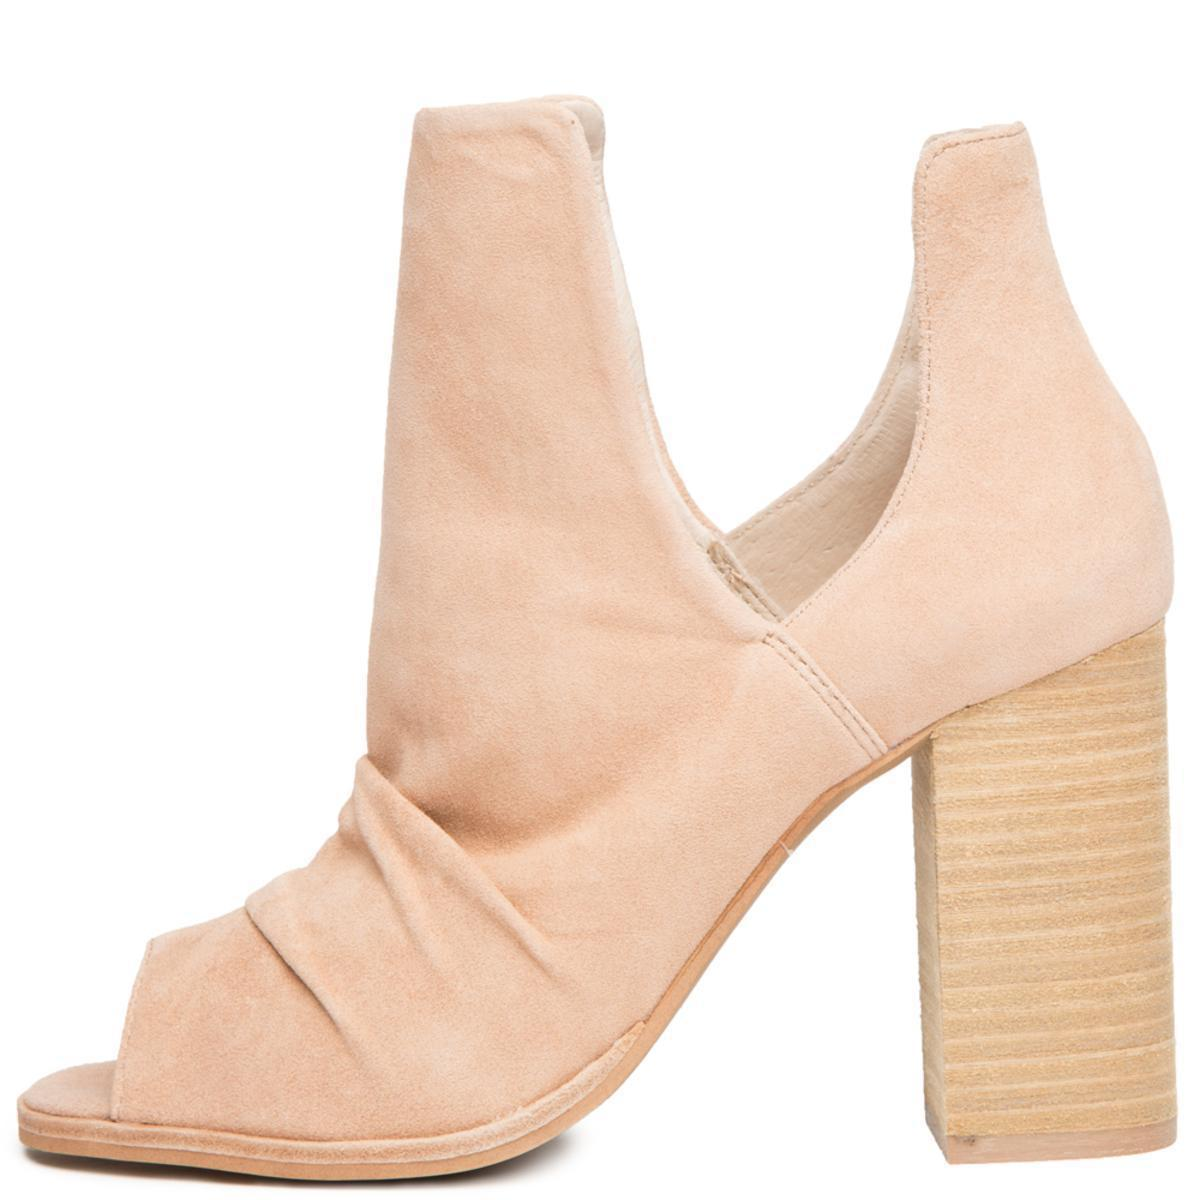 f2d9cf5622e Chinese Laundry. Women s Natural Kristin Cavallari X Lash Tiger Eye Peep  Toe Booties